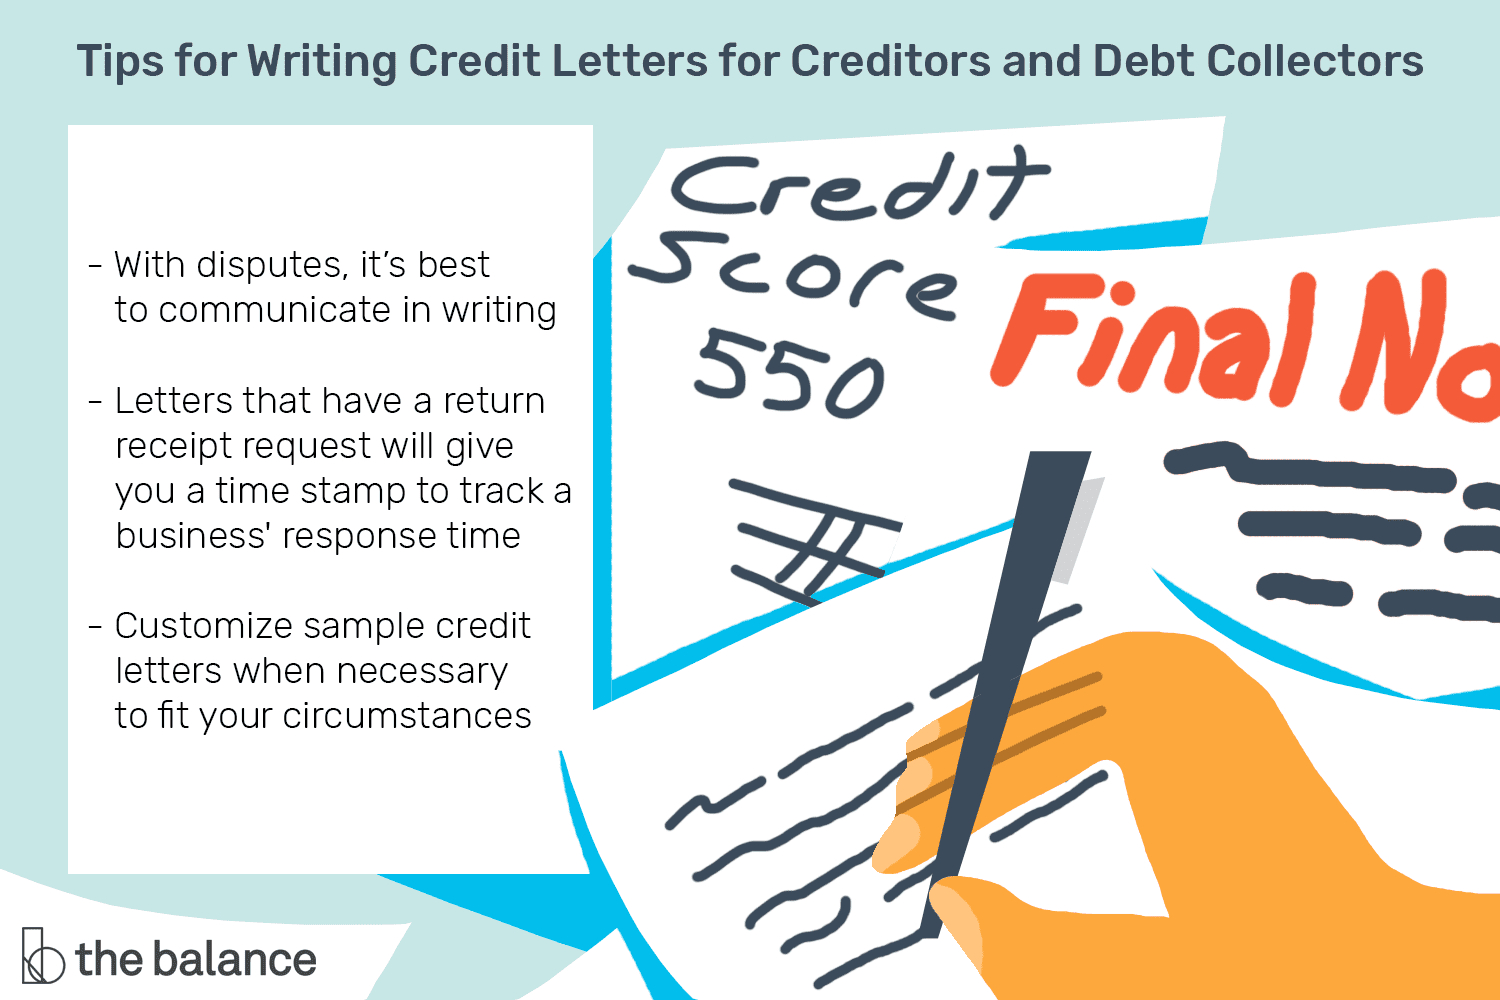 Sample Credit Letters For Creditors And Debt Collectors With Dispute Letter To Creditor Template